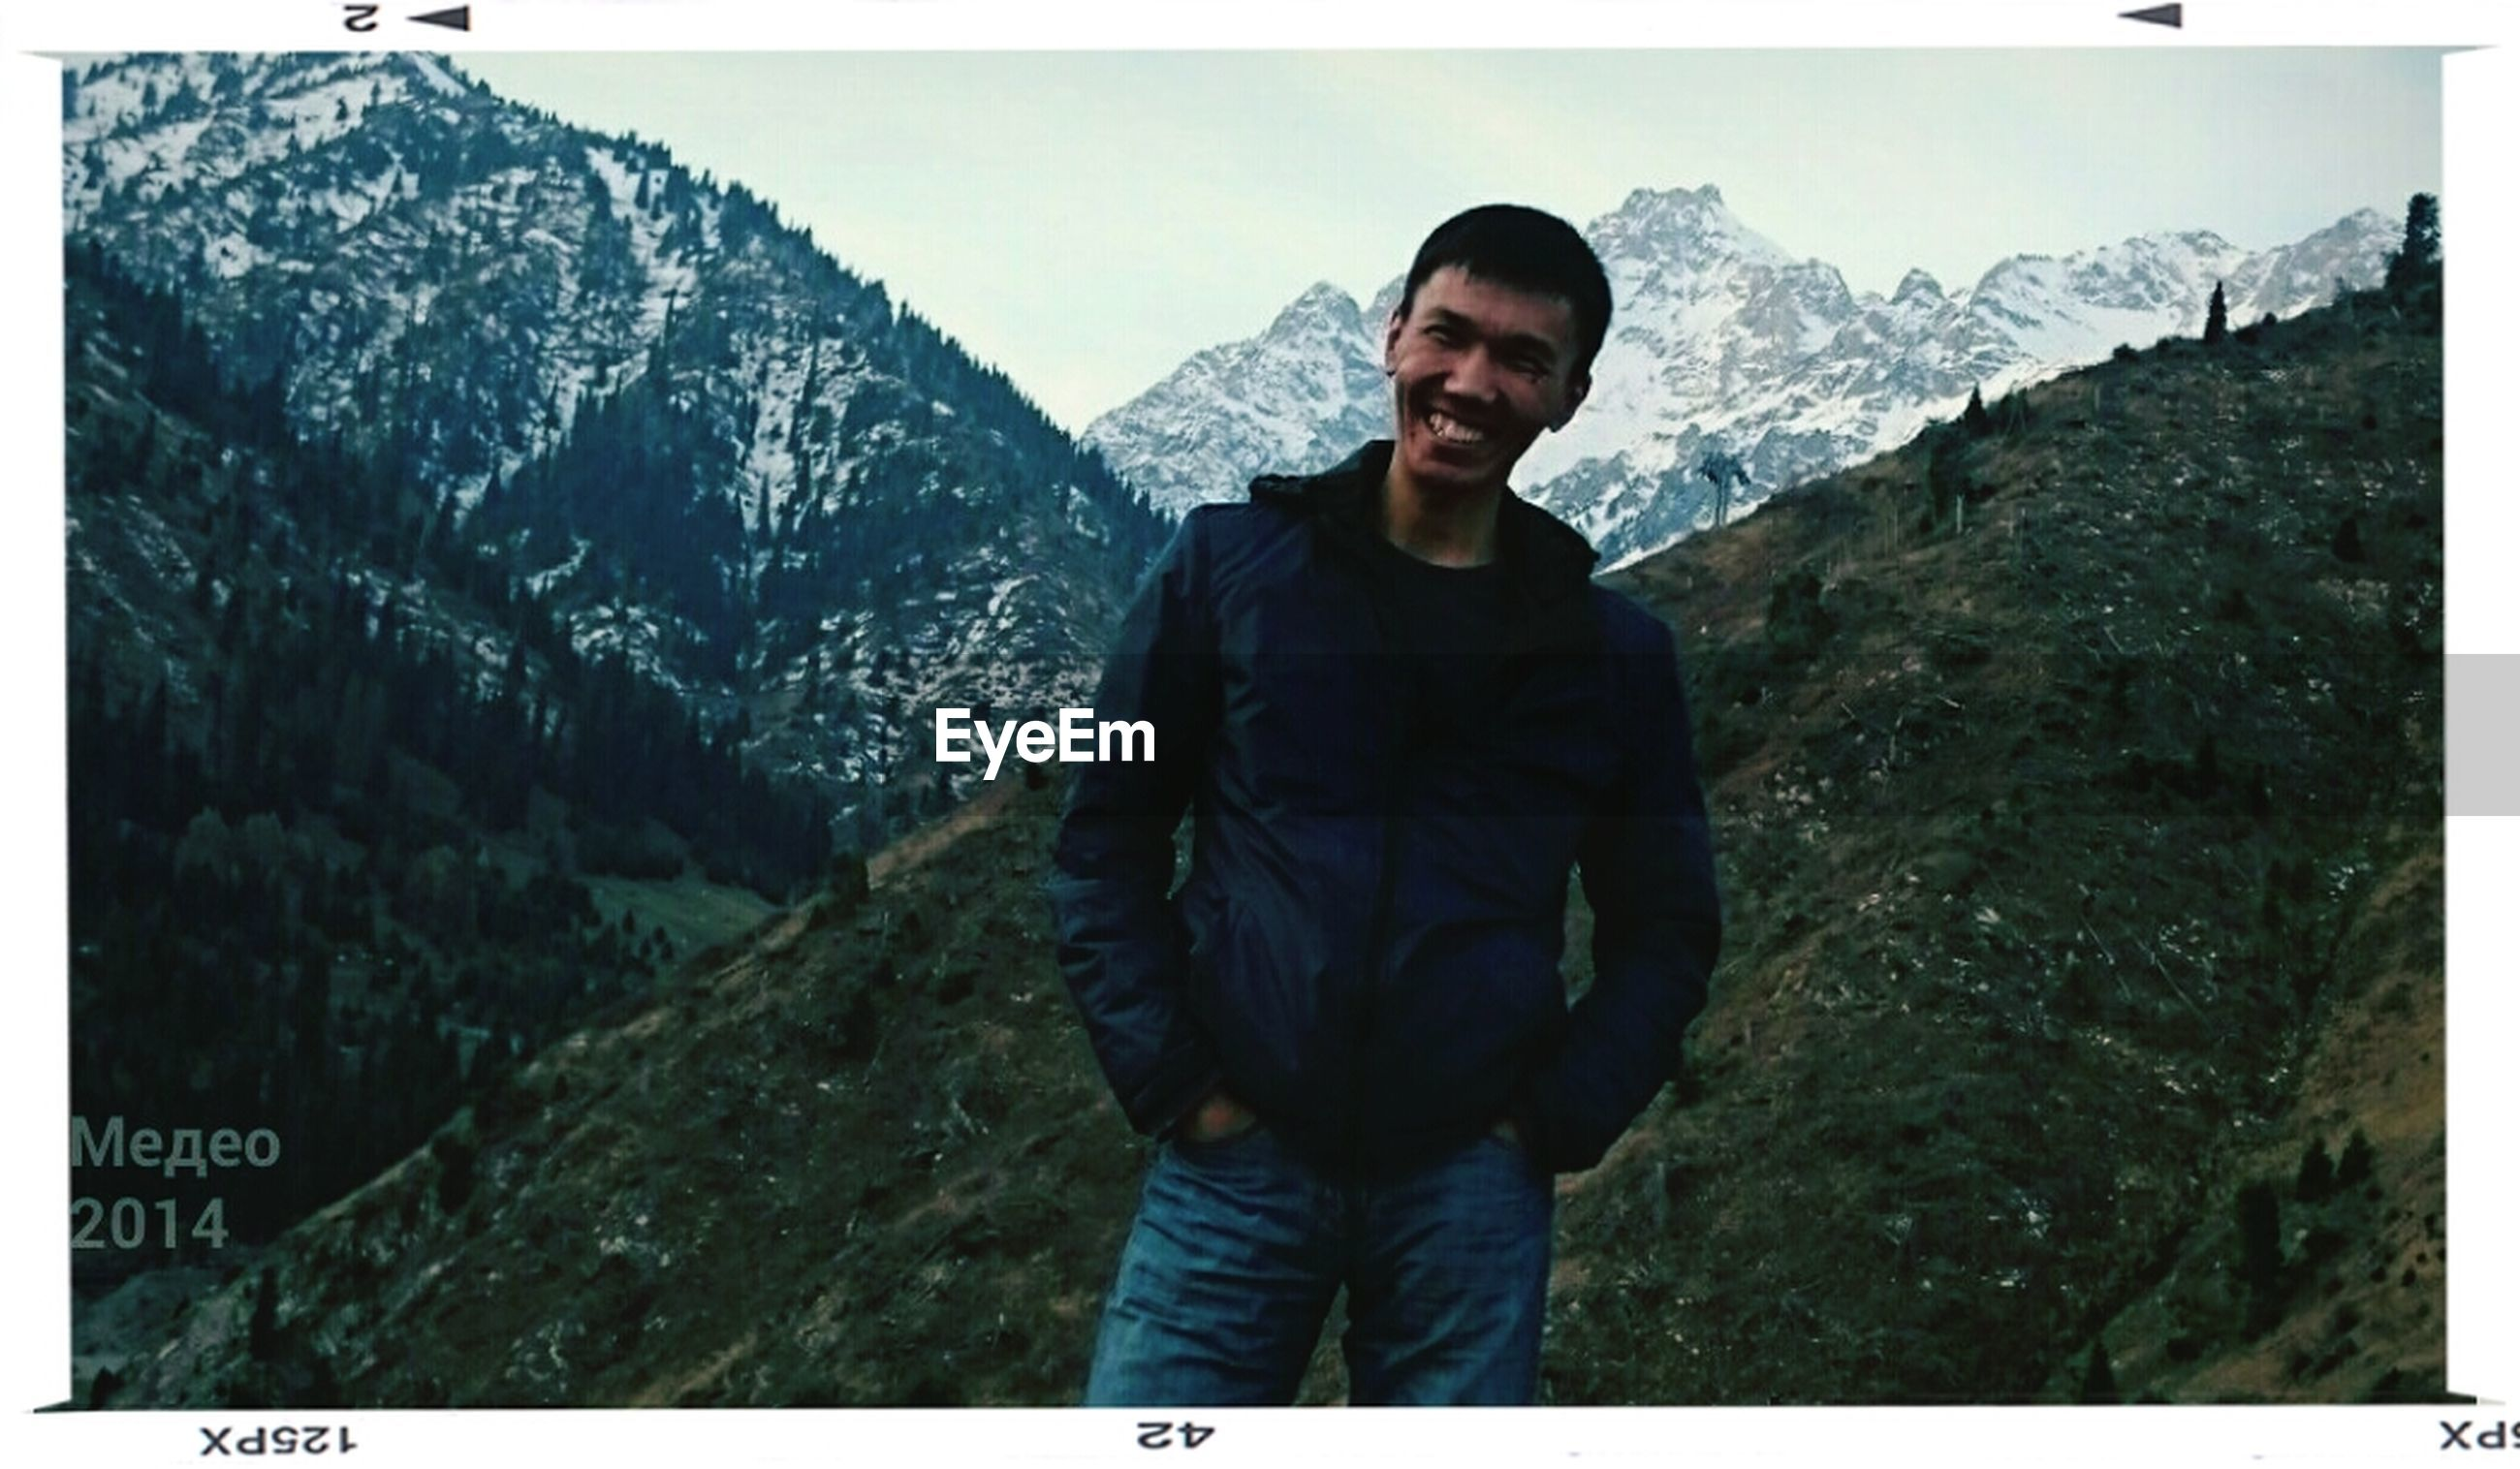 transfer print, mountain, lifestyles, leisure activity, casual clothing, standing, auto post production filter, young adult, young men, mountain range, three quarter length, full length, person, rock - object, day, nature, sky, men